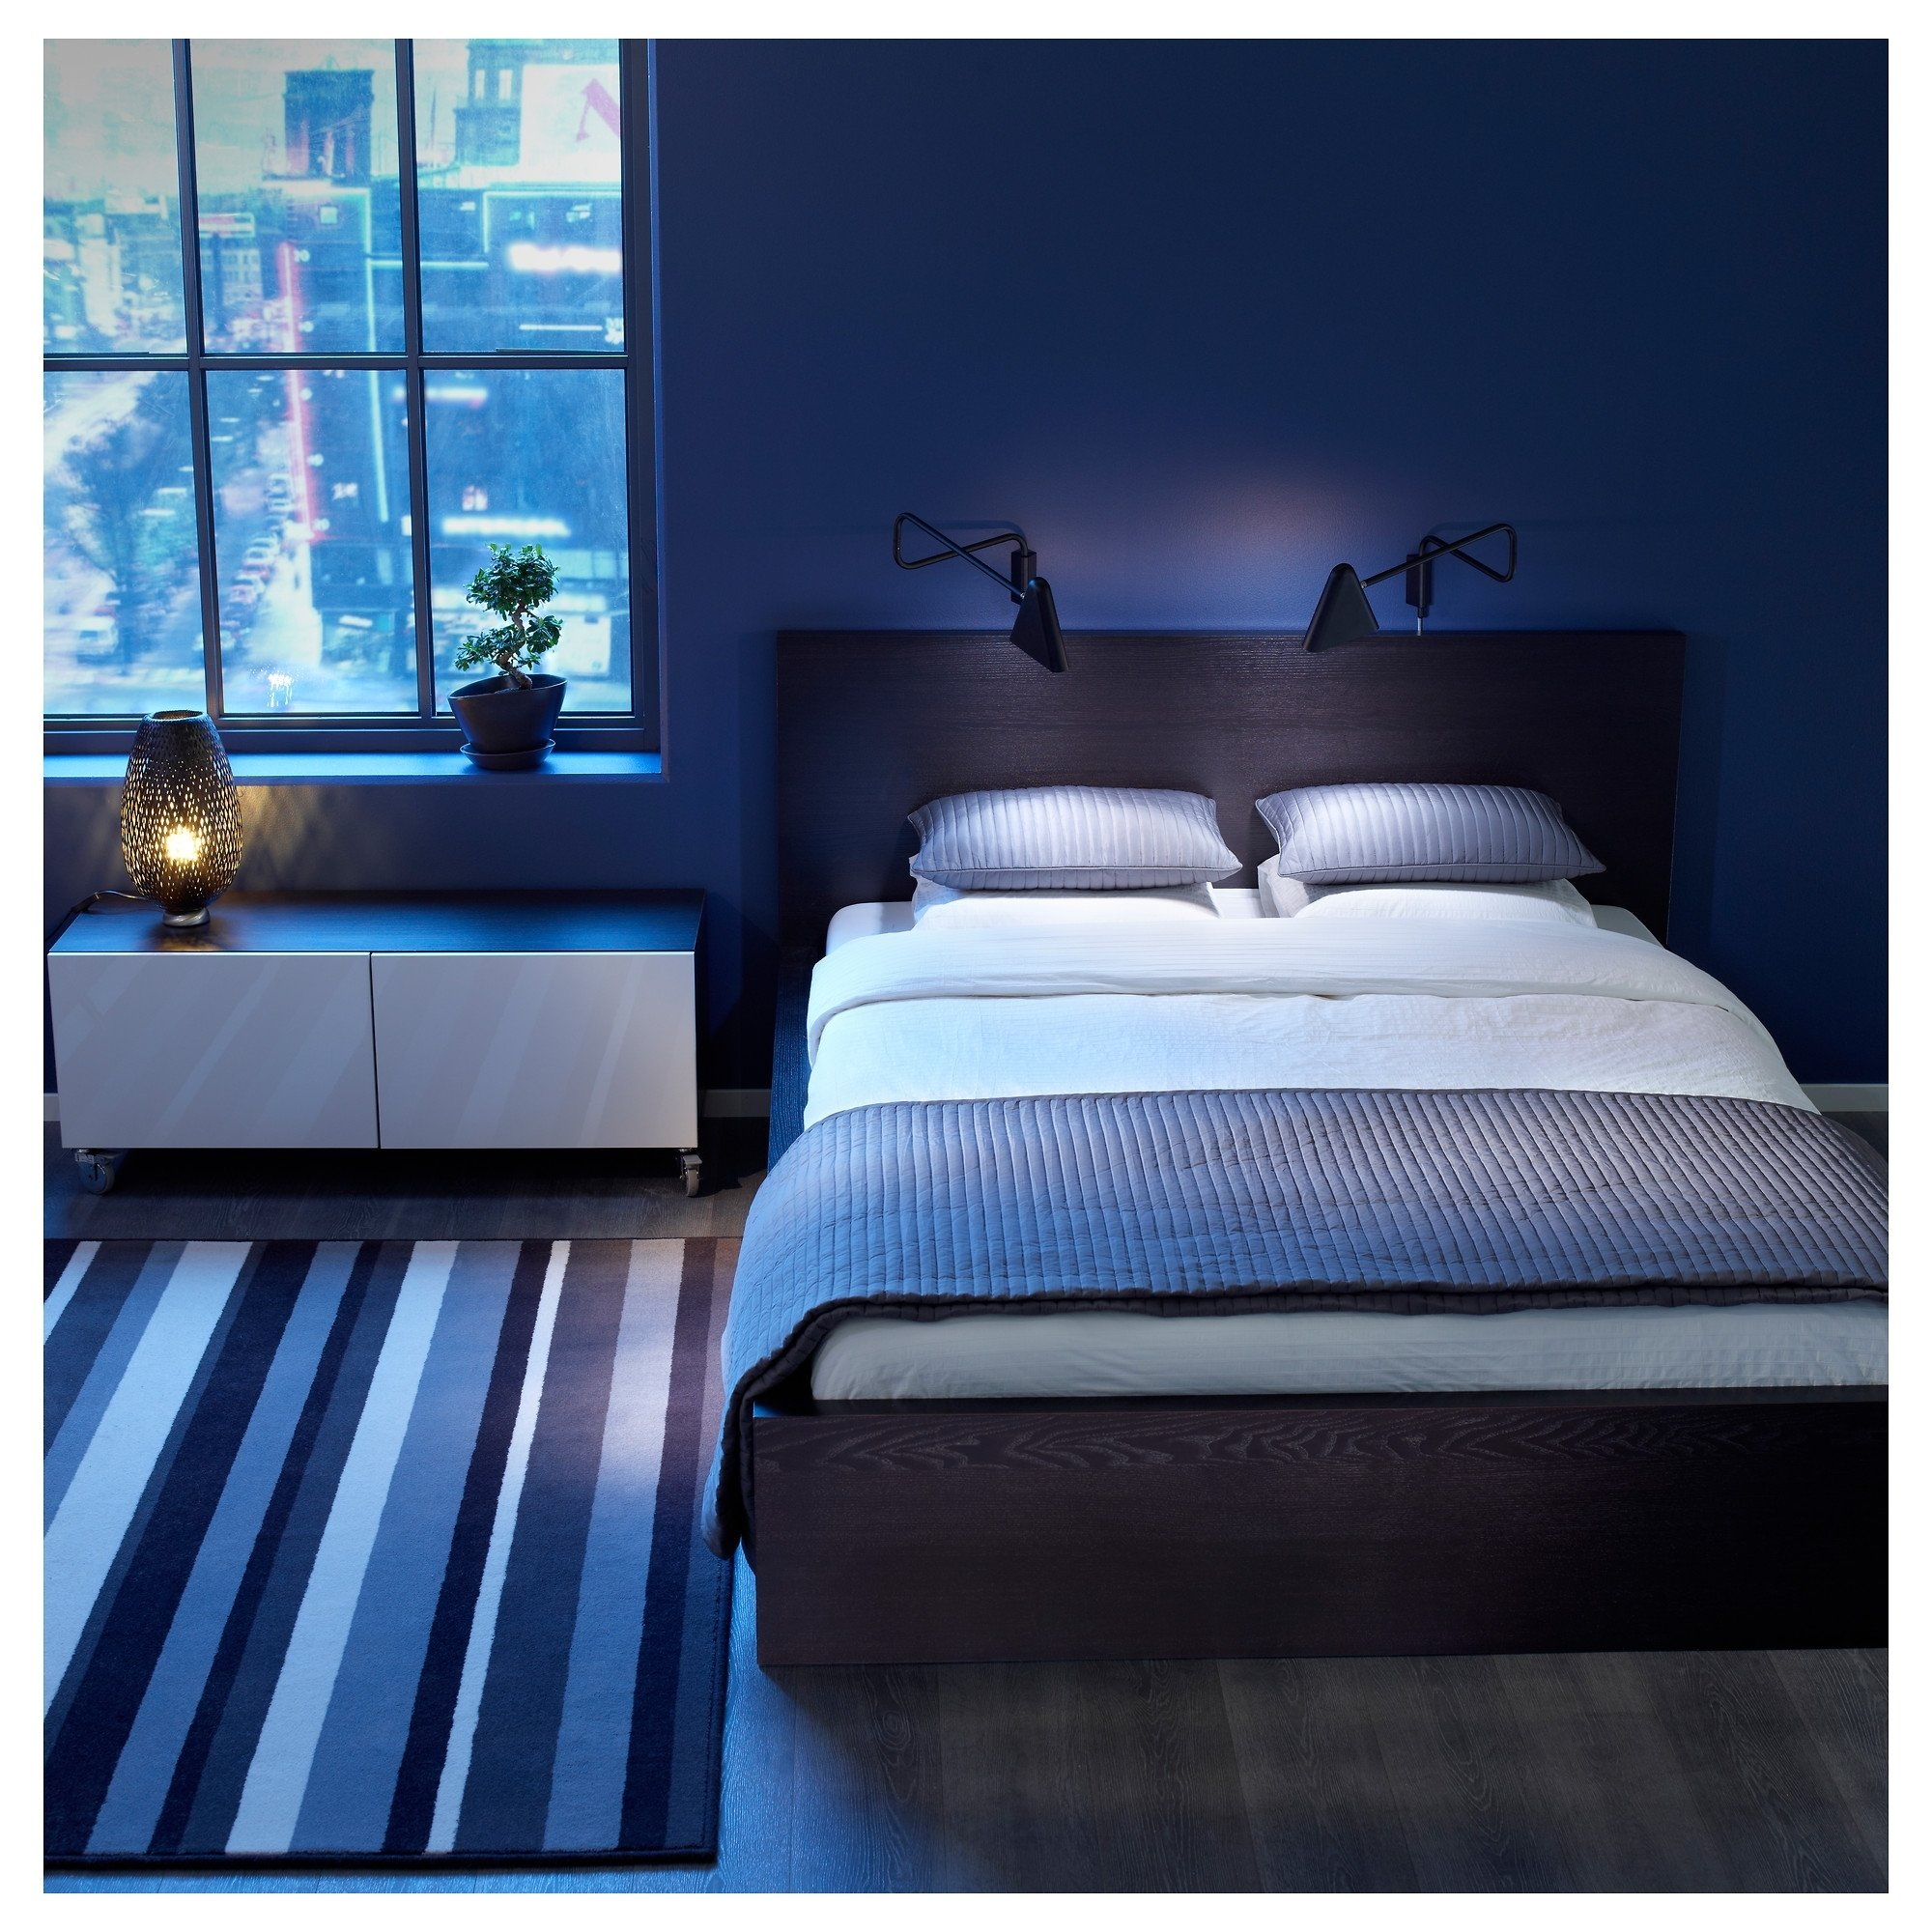 10 Lovable Blue And Black Bedroom Ideas blue and white bedroom designs luxury navy blue and black bedroom 2020